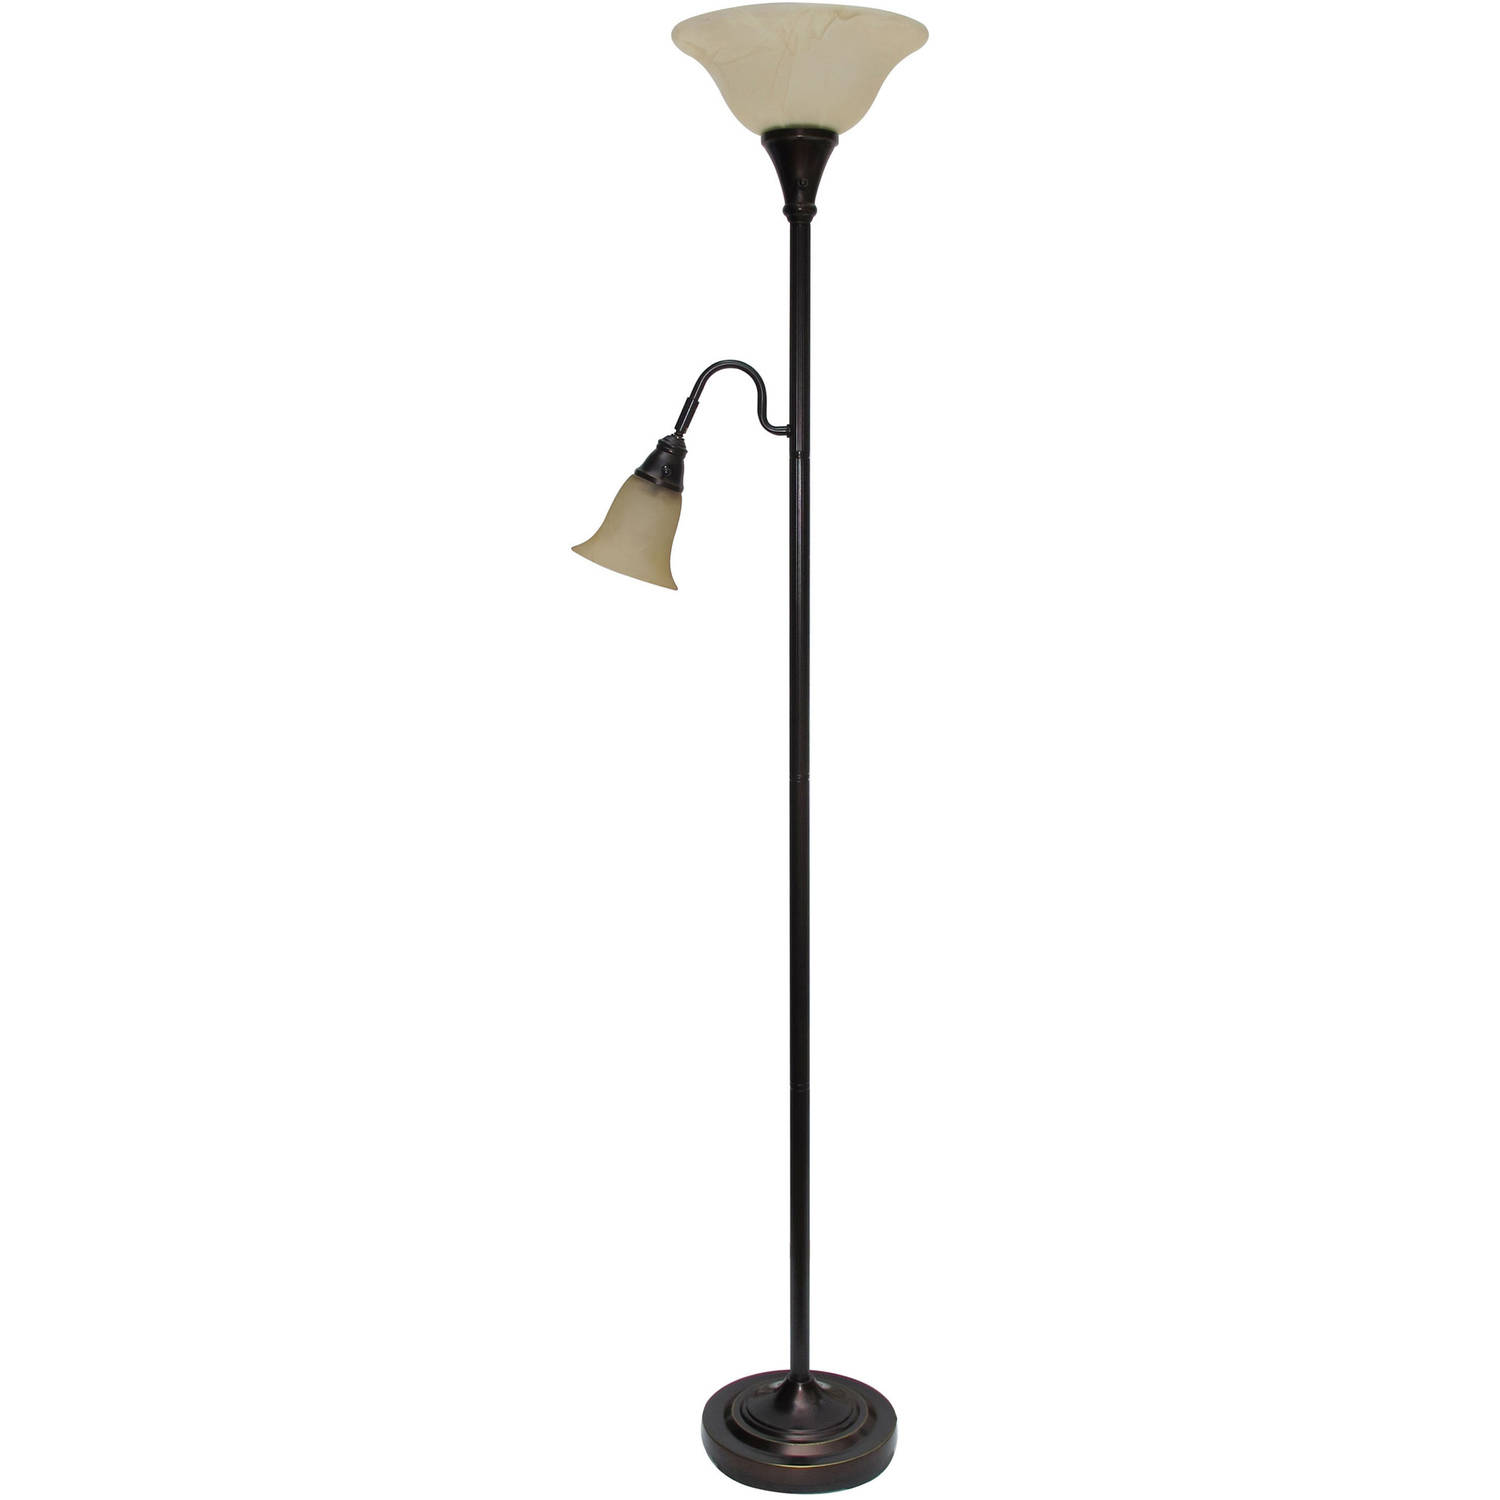 Mainstays Glass End Table Floor Lamp, Matte Black, CFL Bulb Included -  Walmart.com - Mainstays Glass End Table Floor Lamp, Matte Black, CFL Bulb